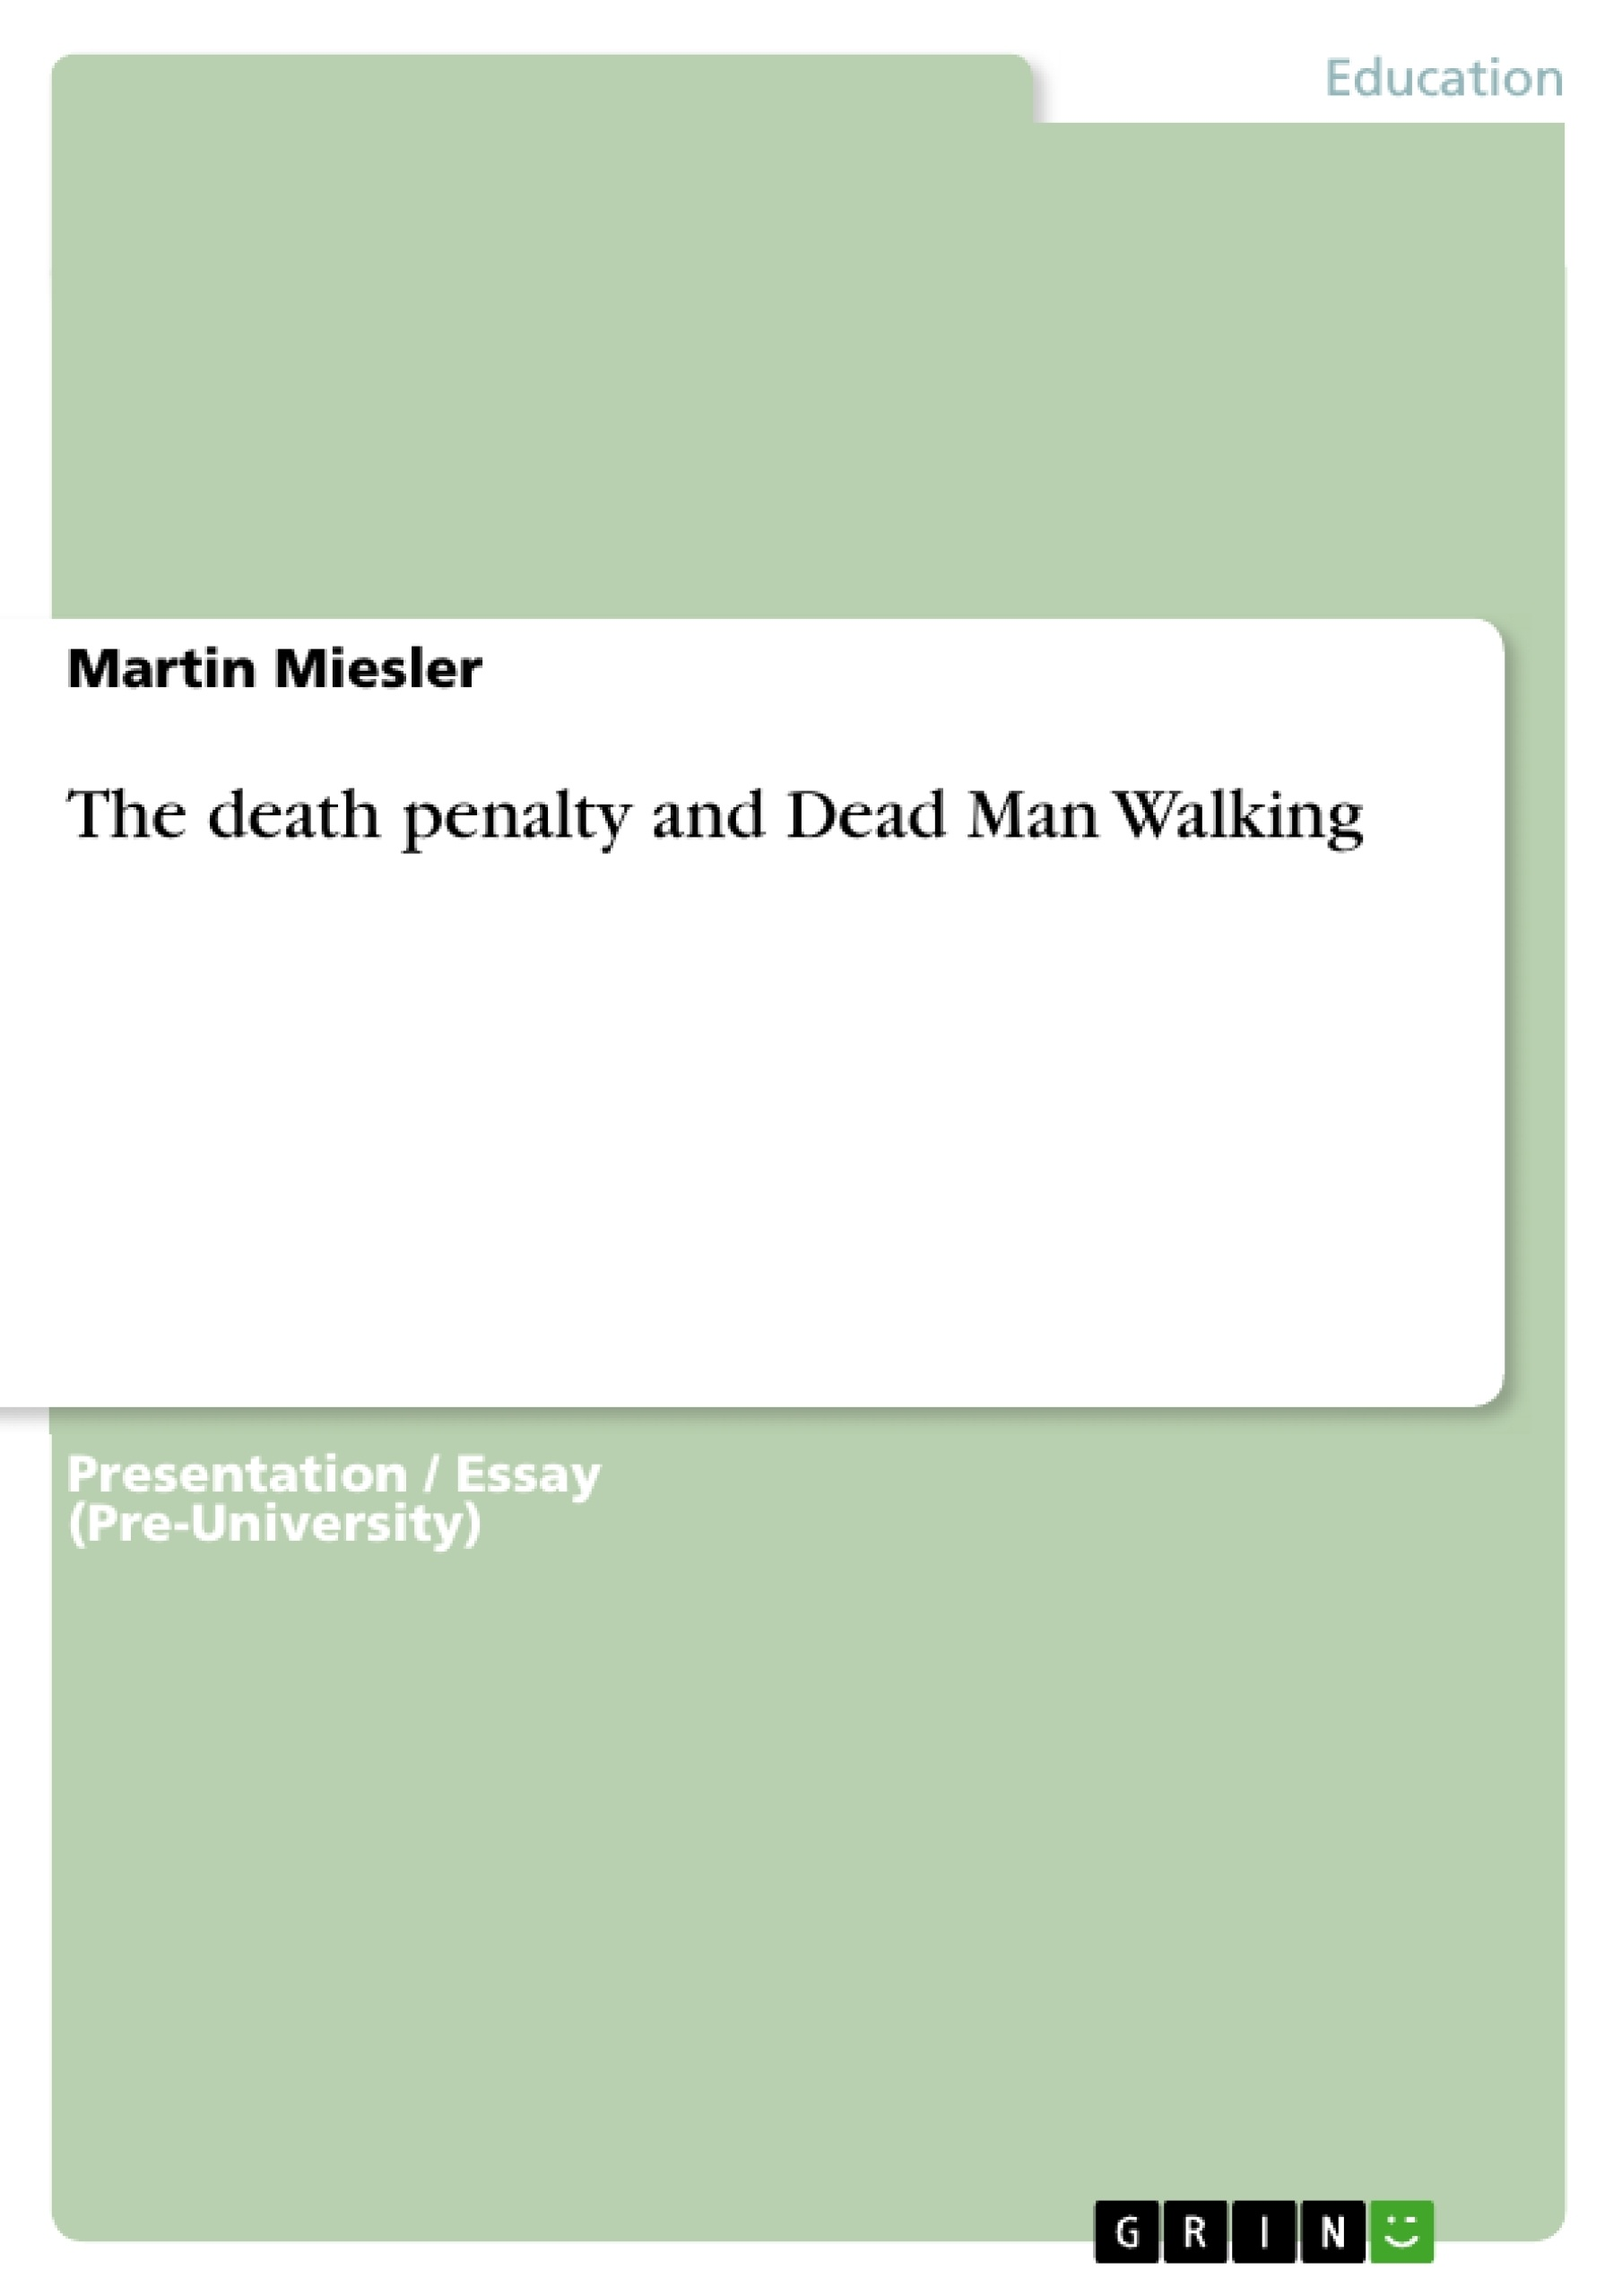 Pros cons of death penalty essay